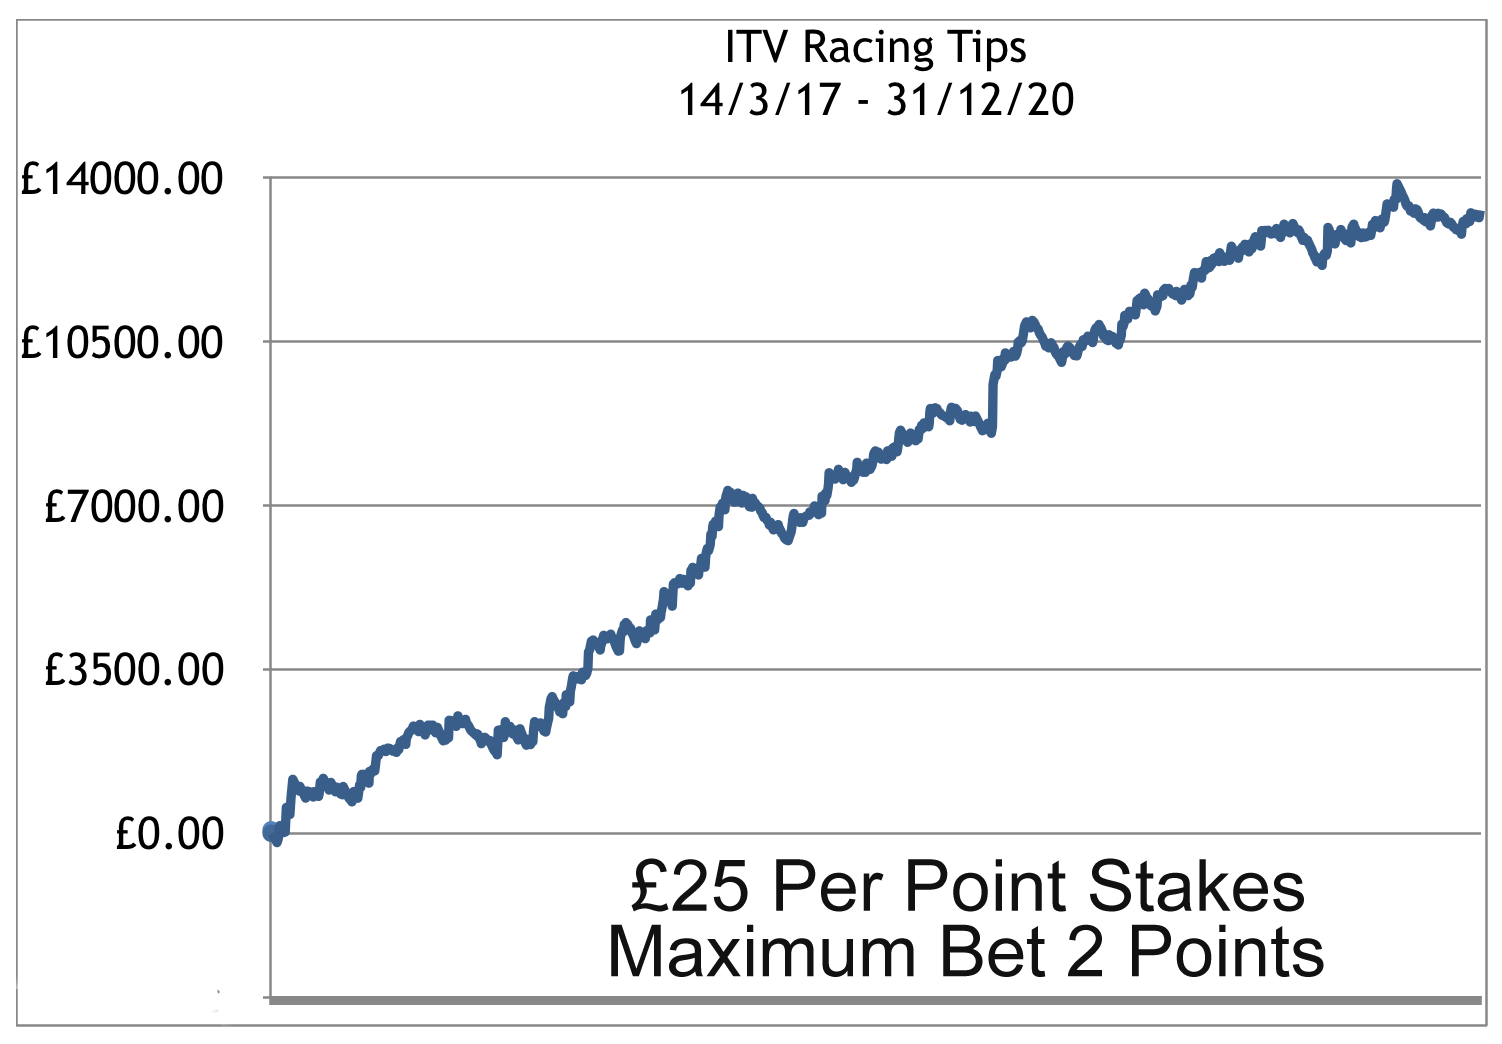 ITV Racing Tips Results Chart